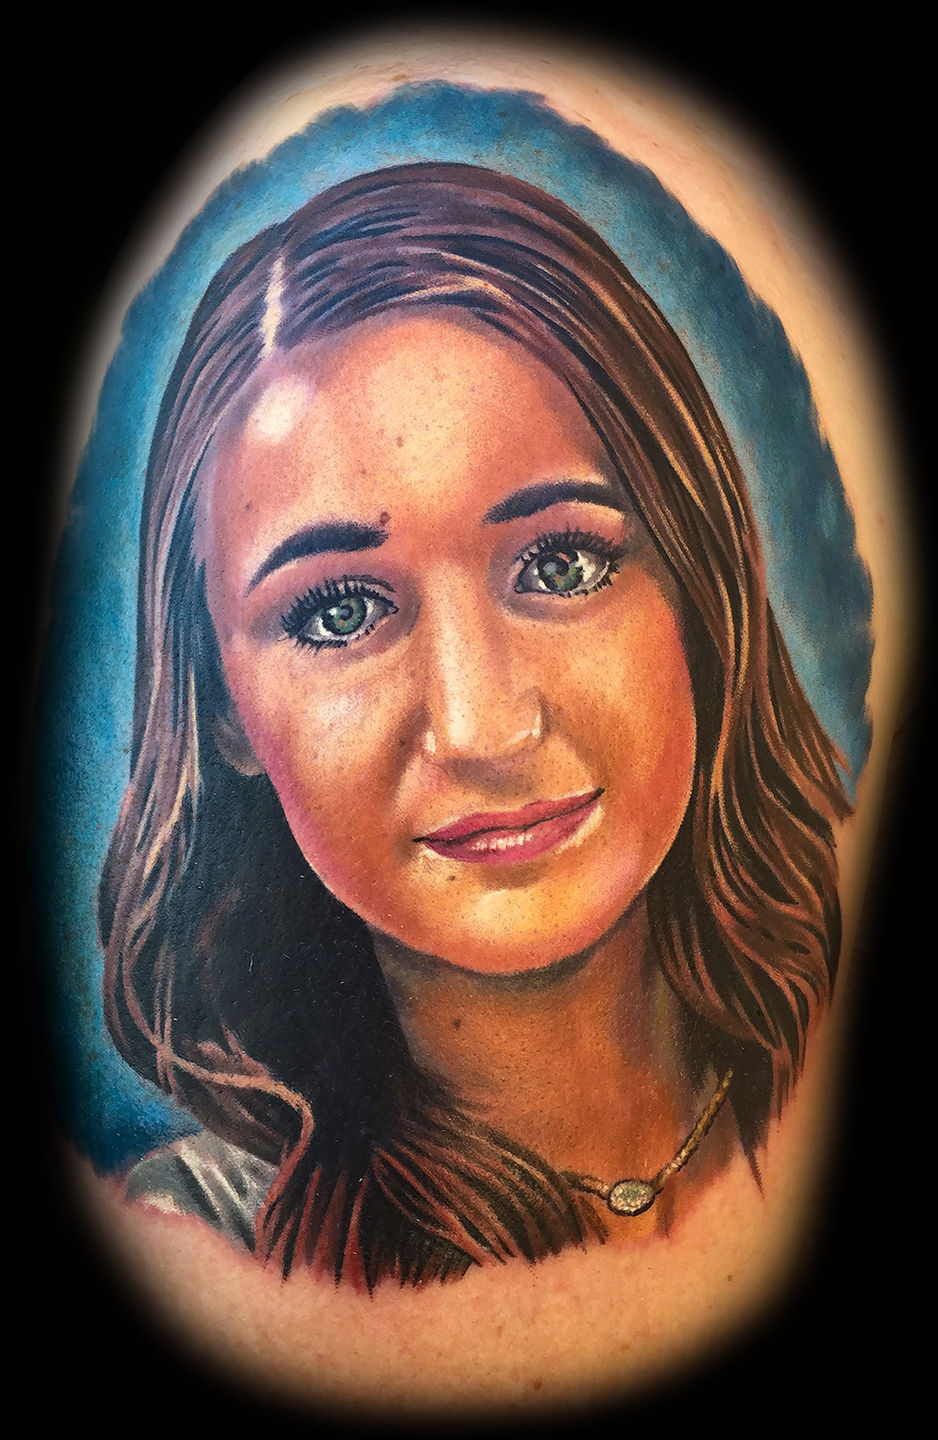 Best-las-vegas-tattoo-artists-shops-joe-riley-inner-visions-tattoo-color-portrait-tattoos